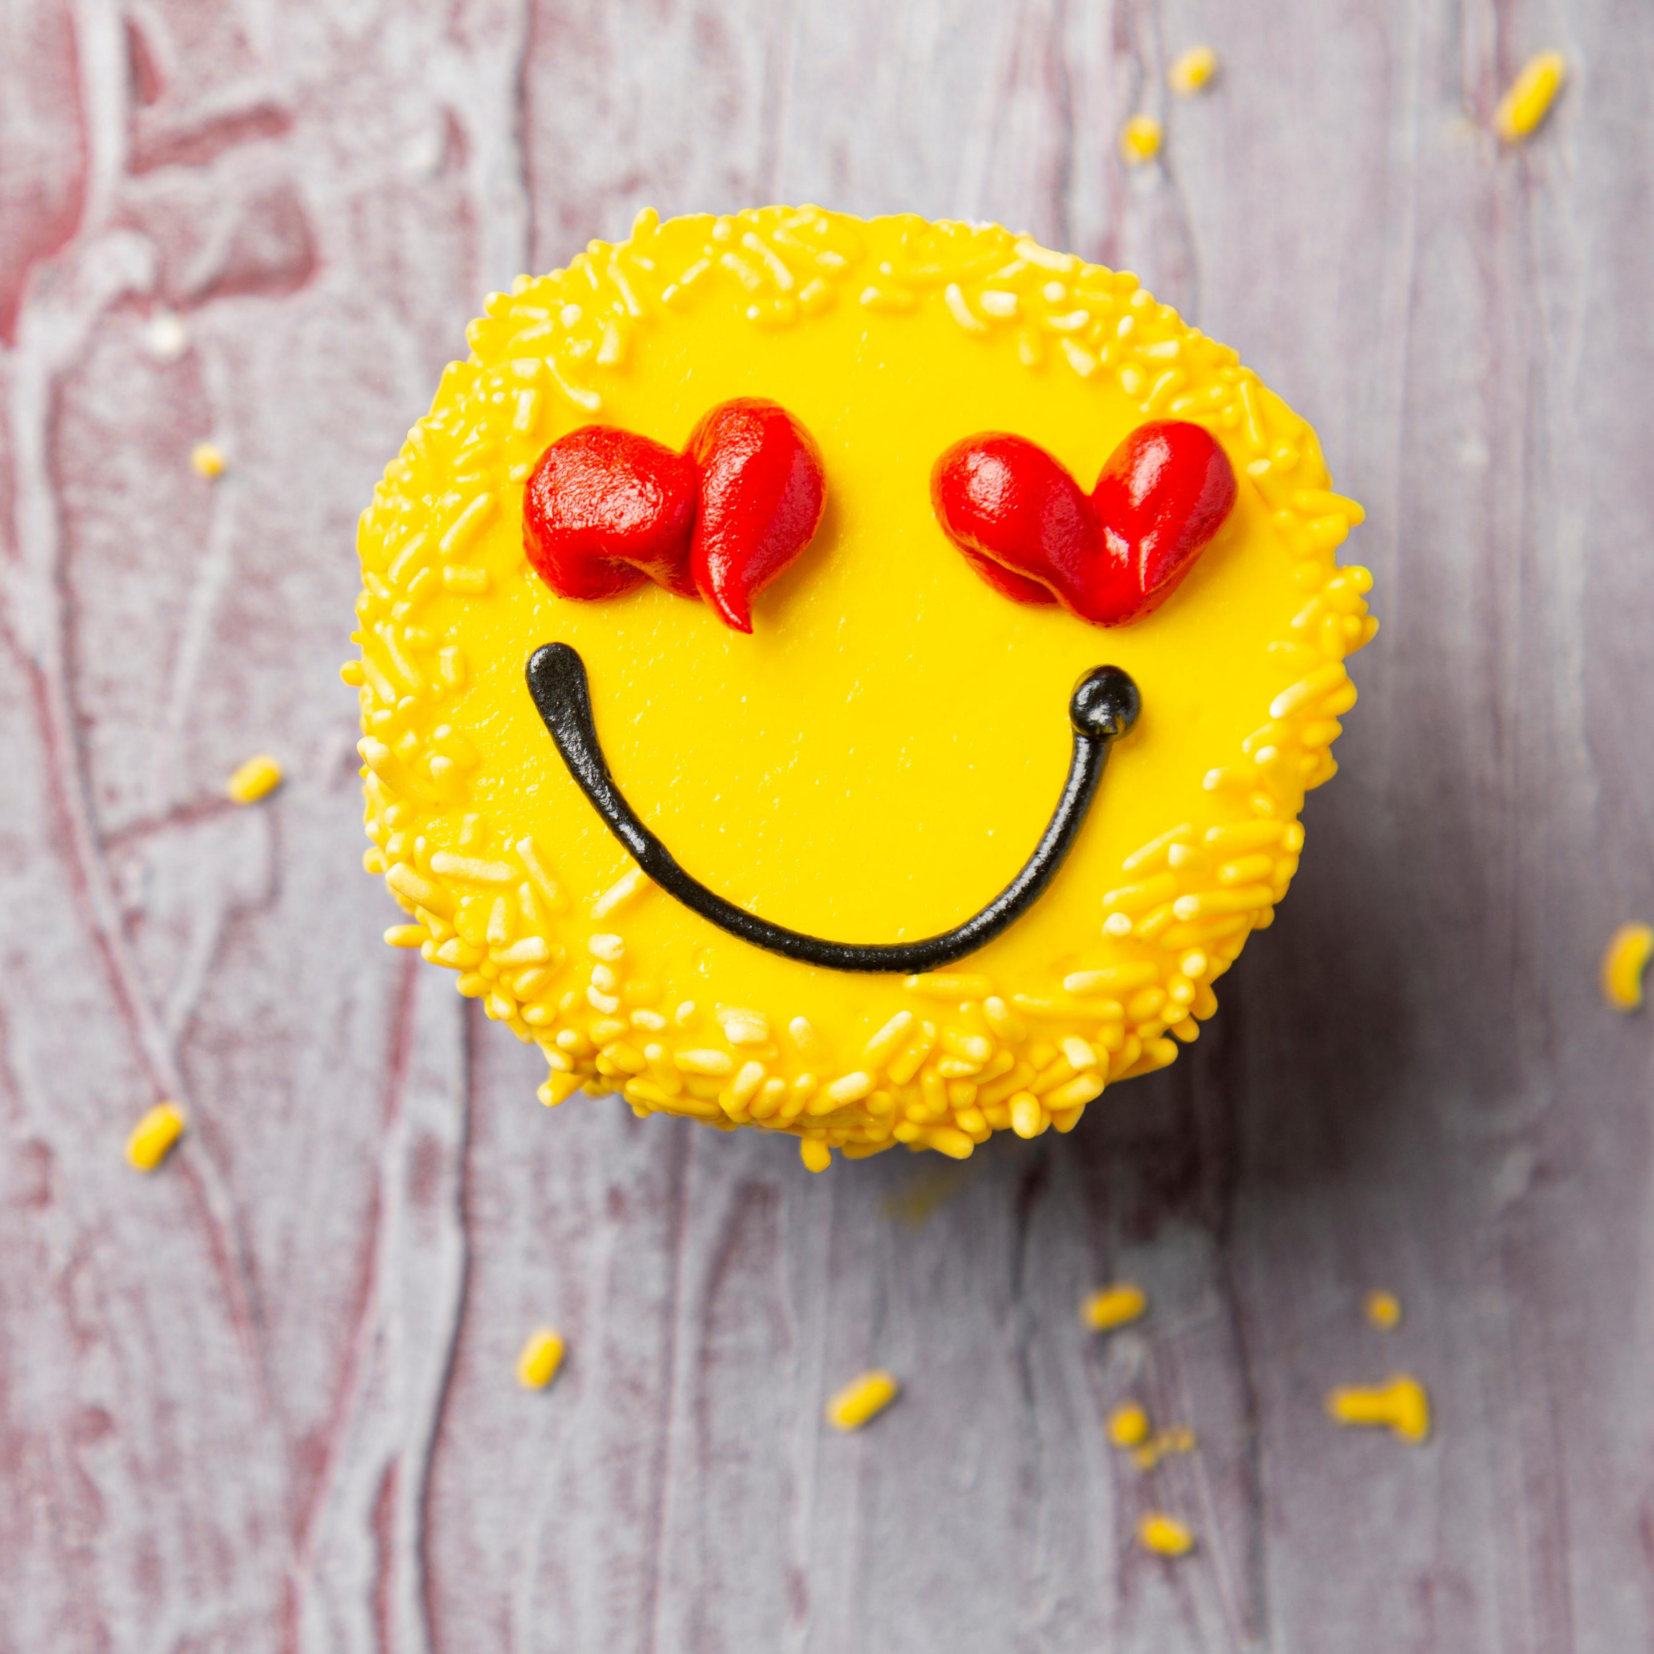 Yellow smile cupcake with red heart eyes depicting Nutrition Counseling